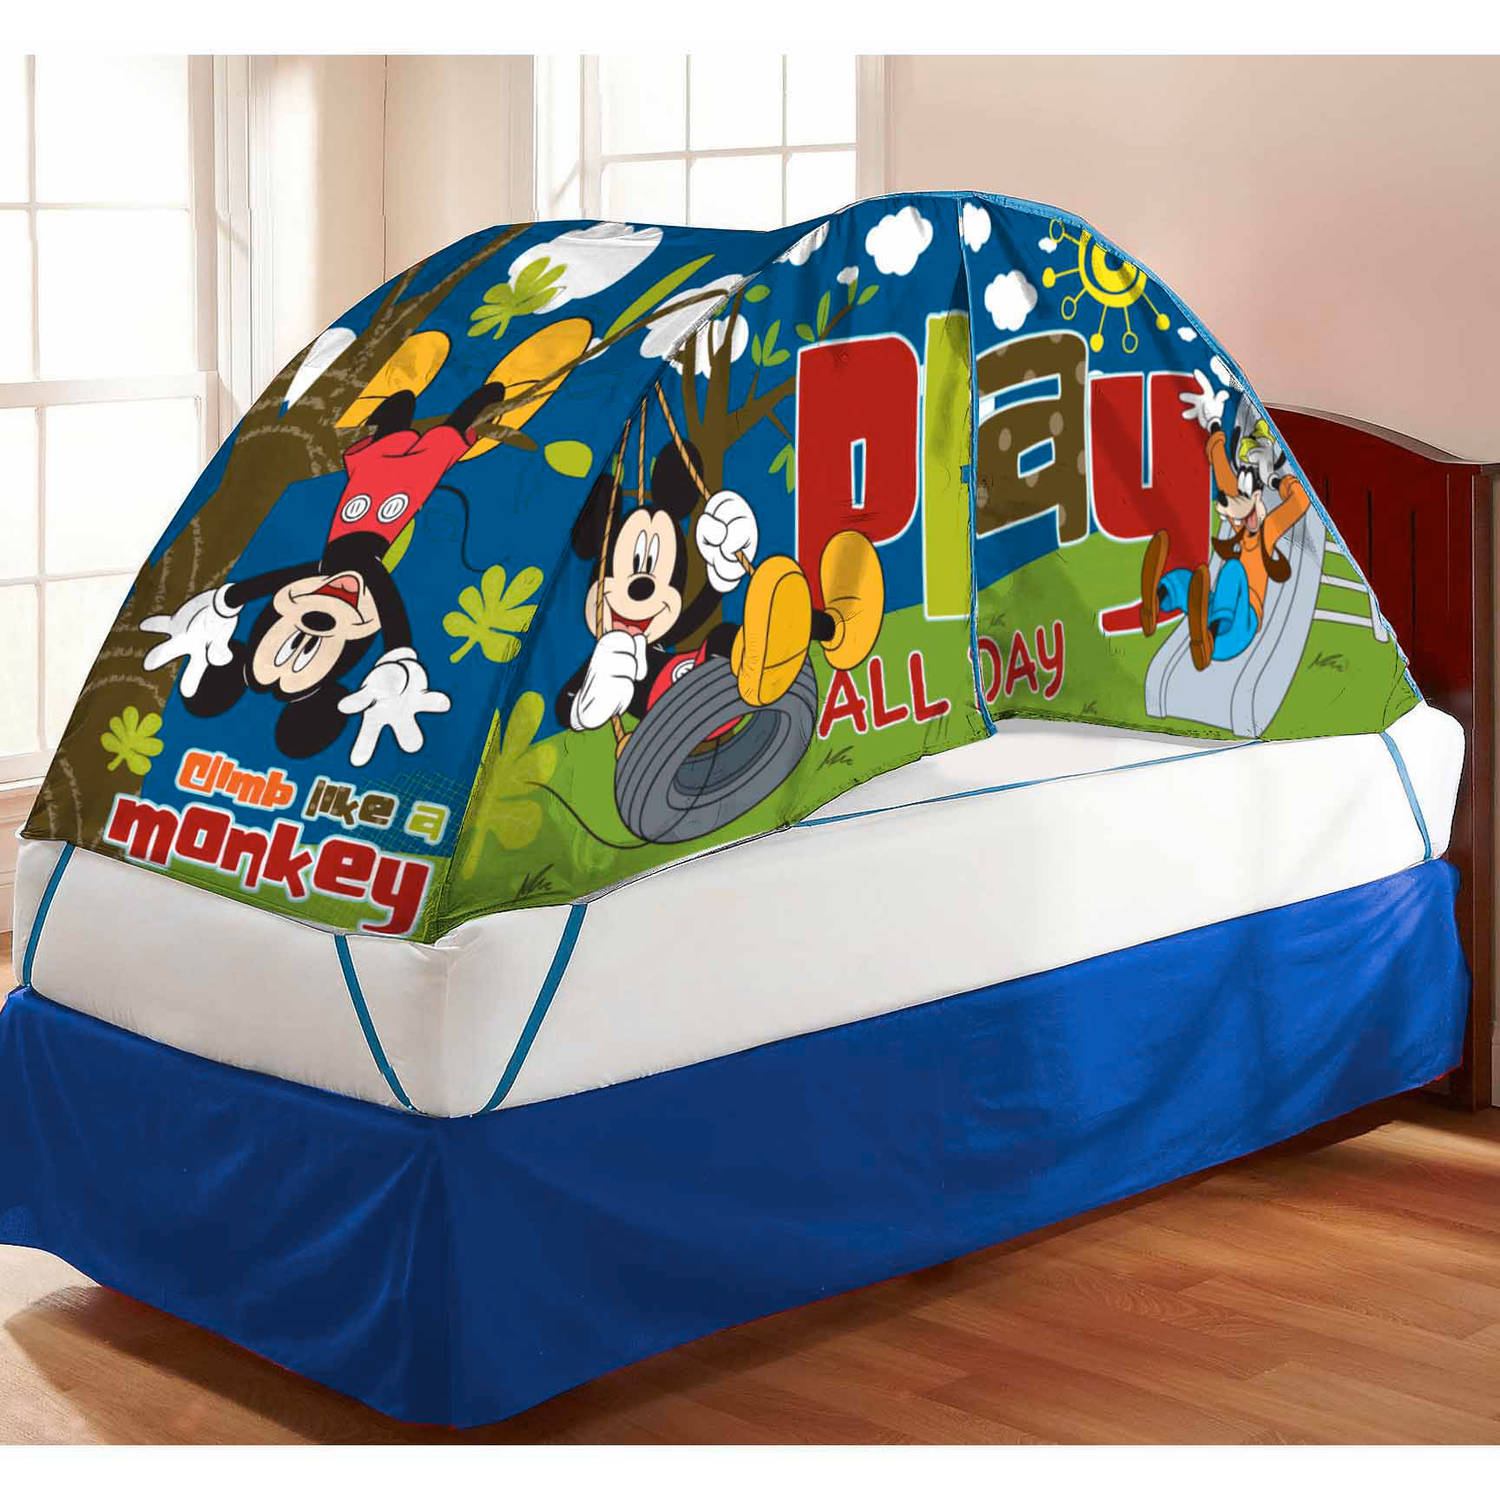 Mickey Mouse Bed Tent with Pushlight & Mickey Mouse Bed Tent with Pushlight - Walmart.com